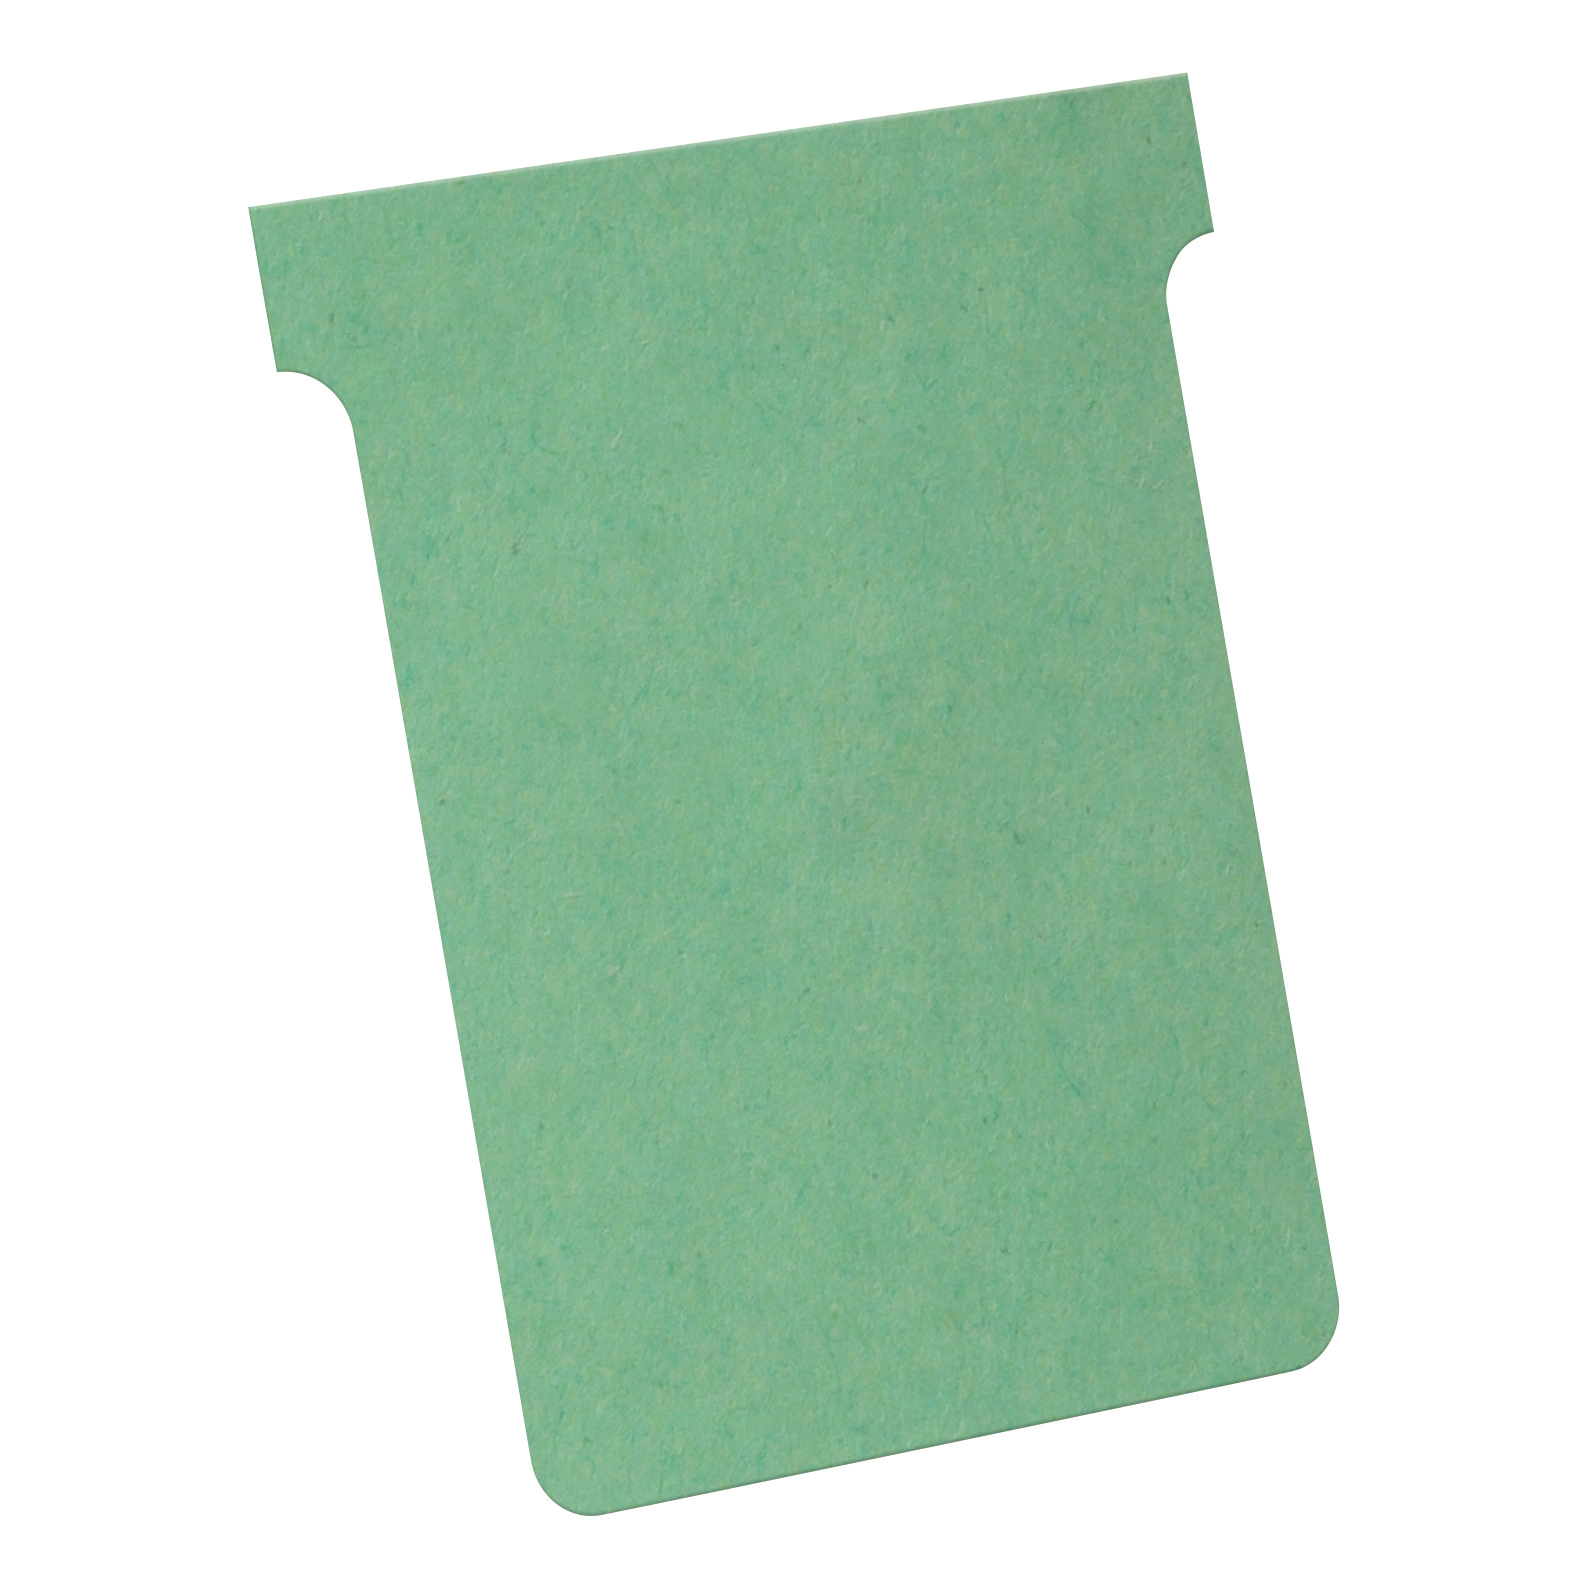 Nobo T-Cards 160gsm Tab Top 15mm W93x Bottom W80x Full H120mm Size 3 Green Ref 32938913 [Pack 100]